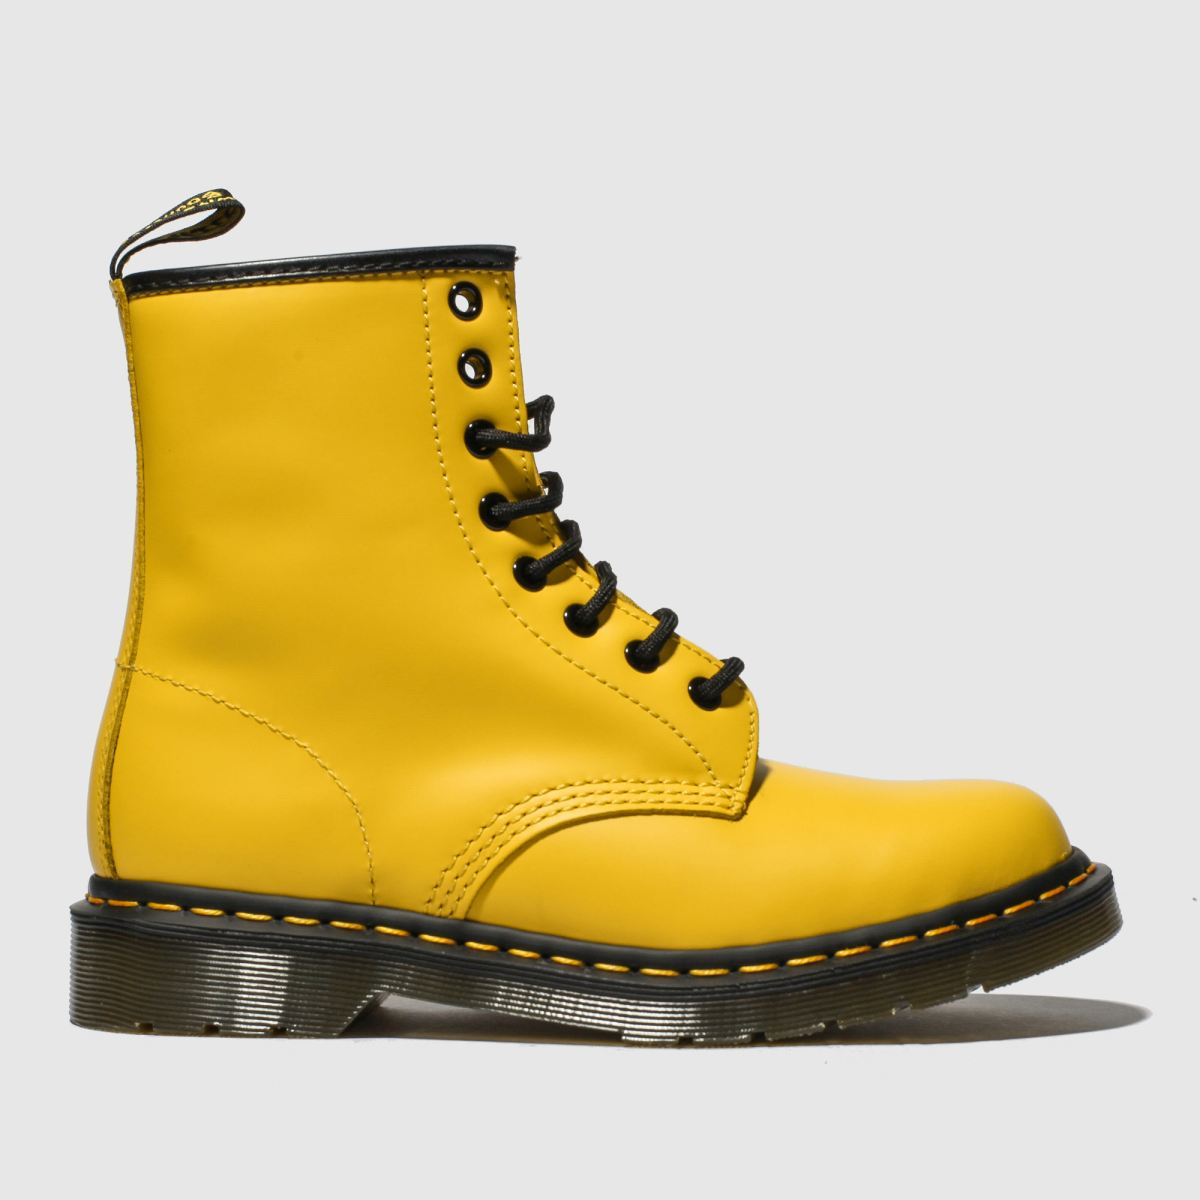 Dr Martens Yellow 1460 8 Eye Boots